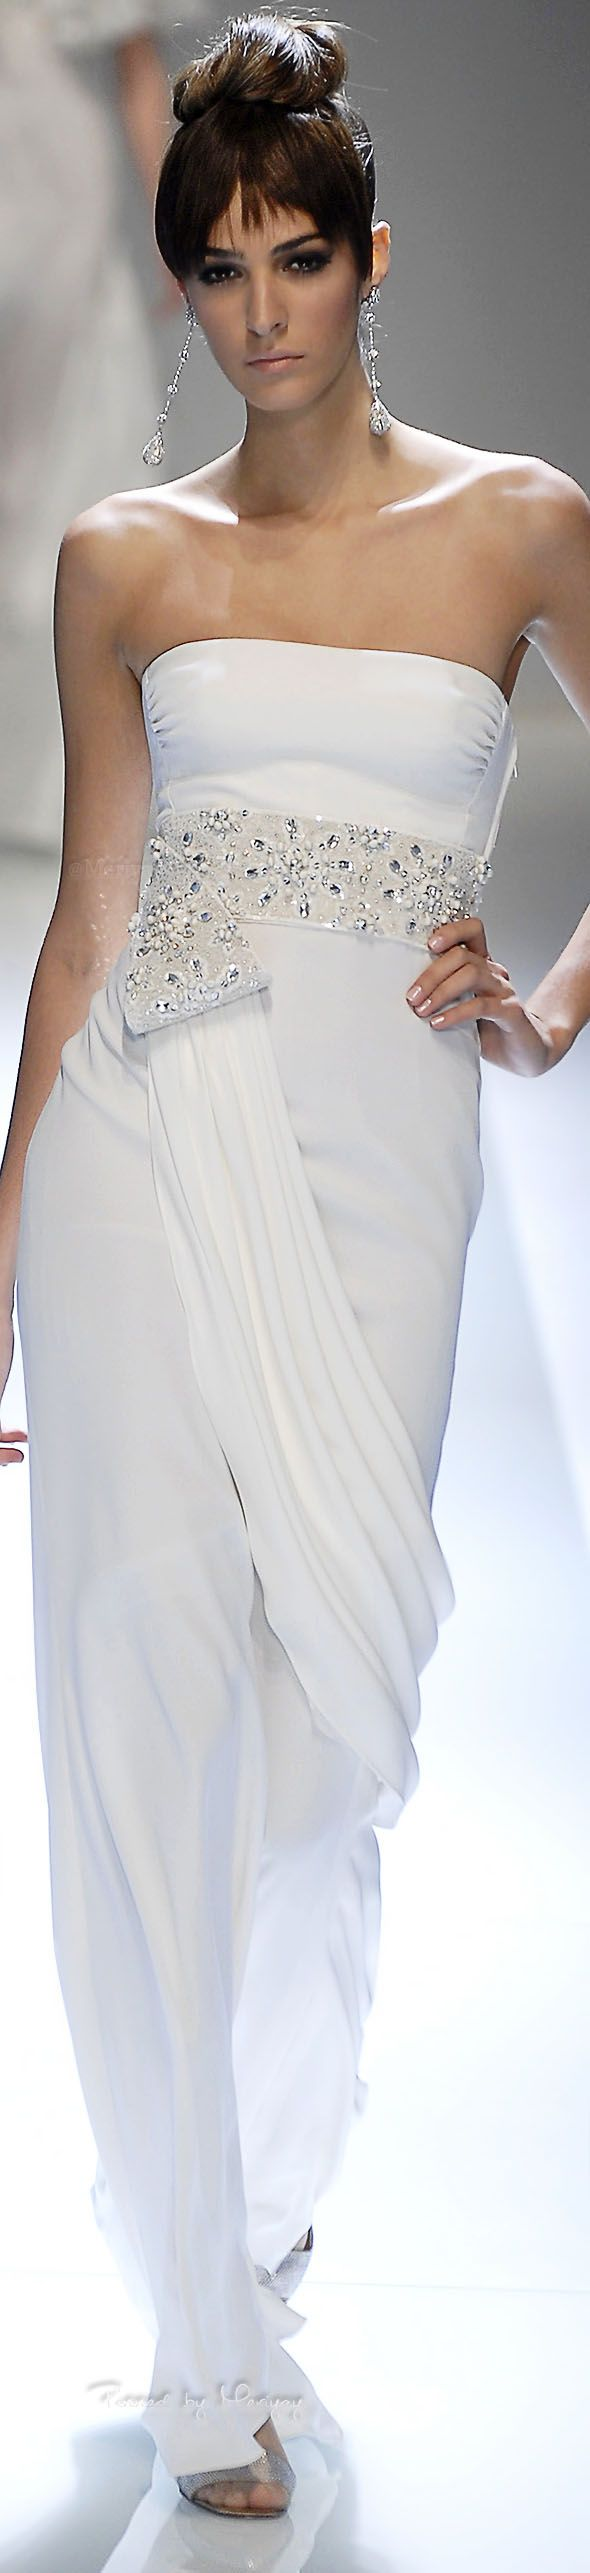 Lovely white evening gown with beaded empire waist band and elegant drape.  We can create haute couture evening dresses like this for you but at an affordable cost. www.dariusfashions.com